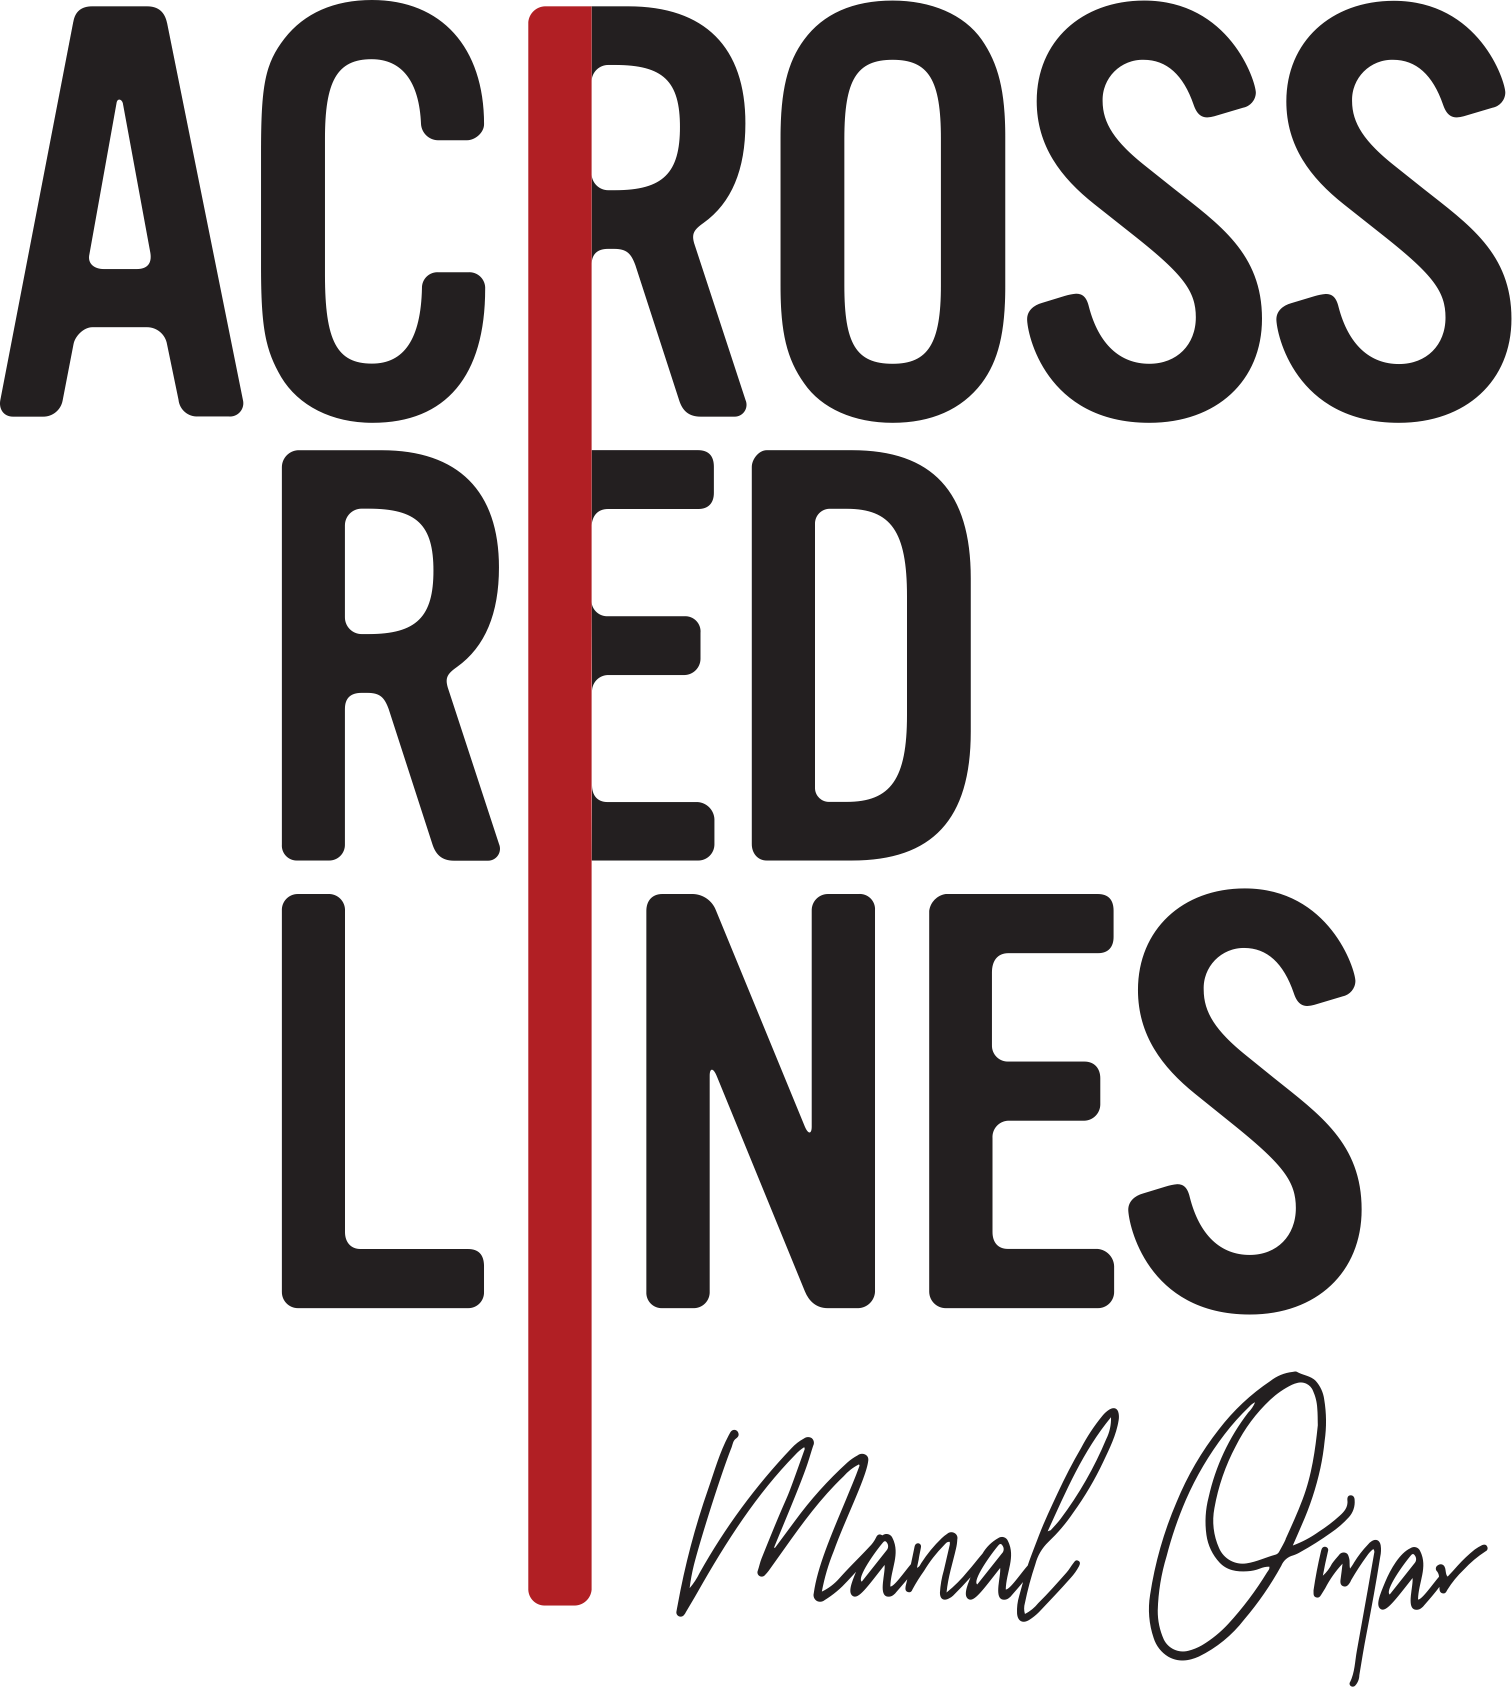 across-red-lines-logo-transparent-large.png